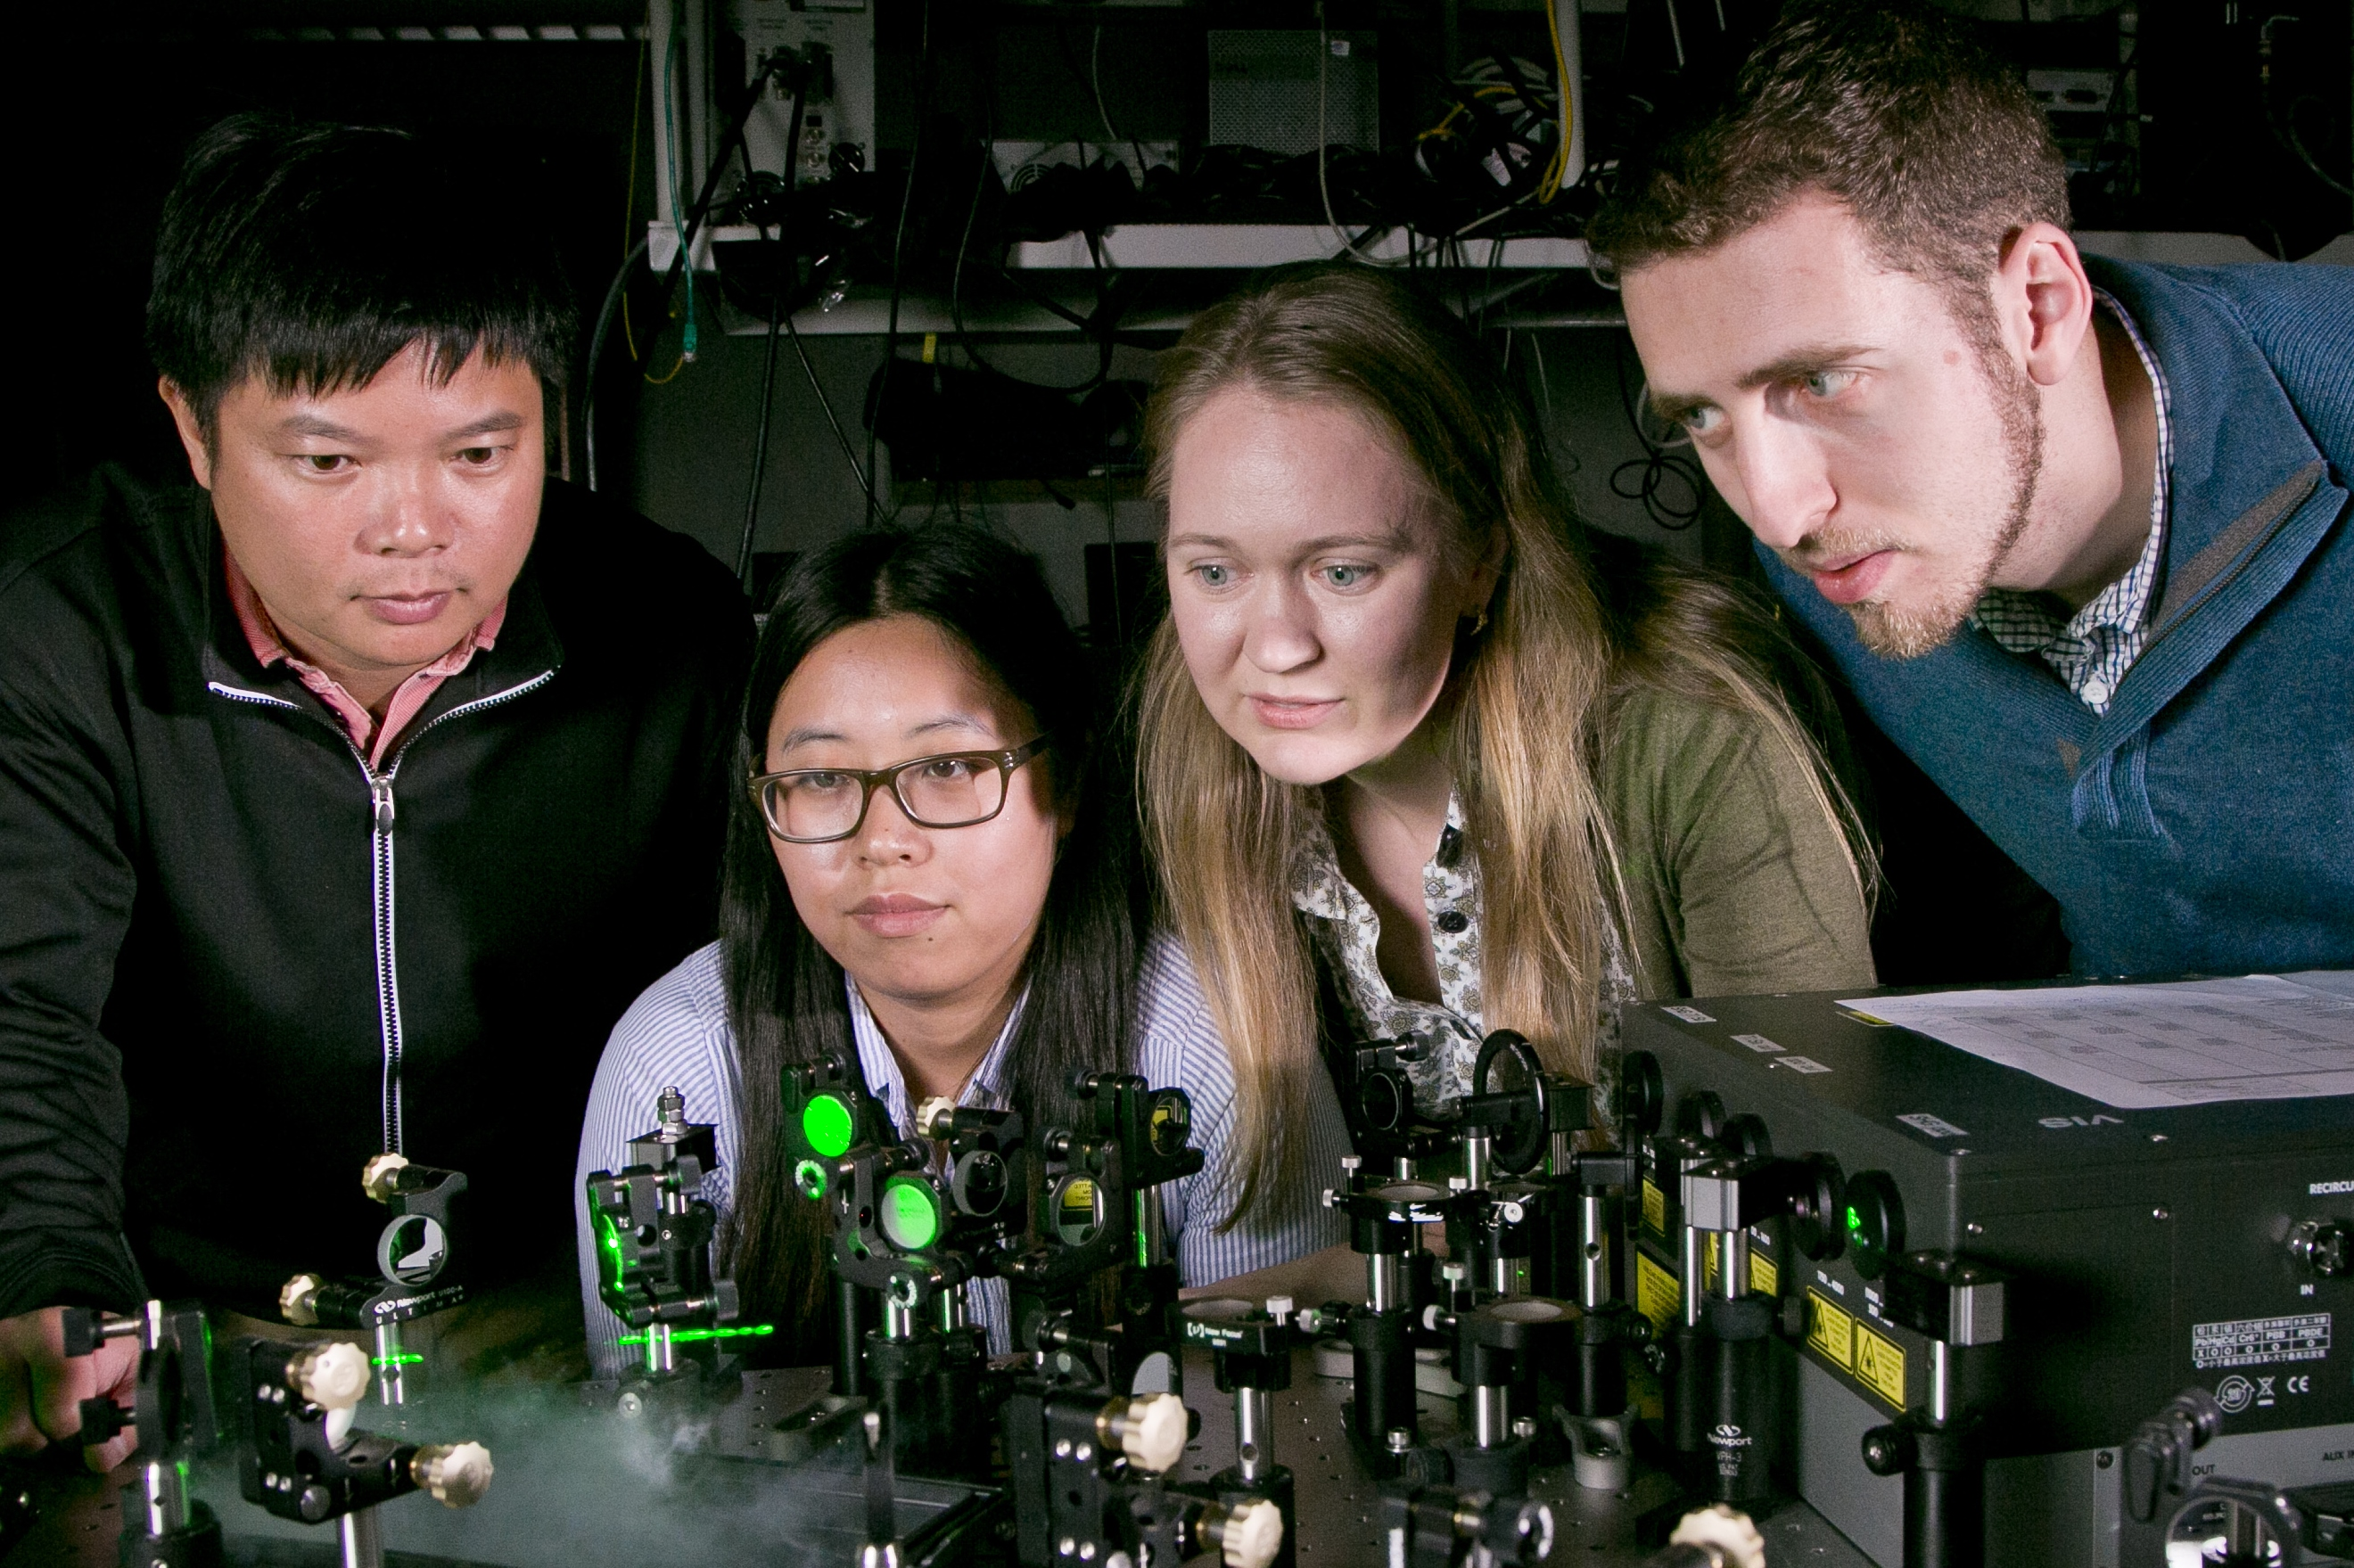 From left to right - Thang Hoang, postdoctoral researcher; Jiani Huang, graduate student; Maiken Mikkelsen, professor of electrical and computer engineering and physics; Gleb Akselrod, postdoctoral researcher